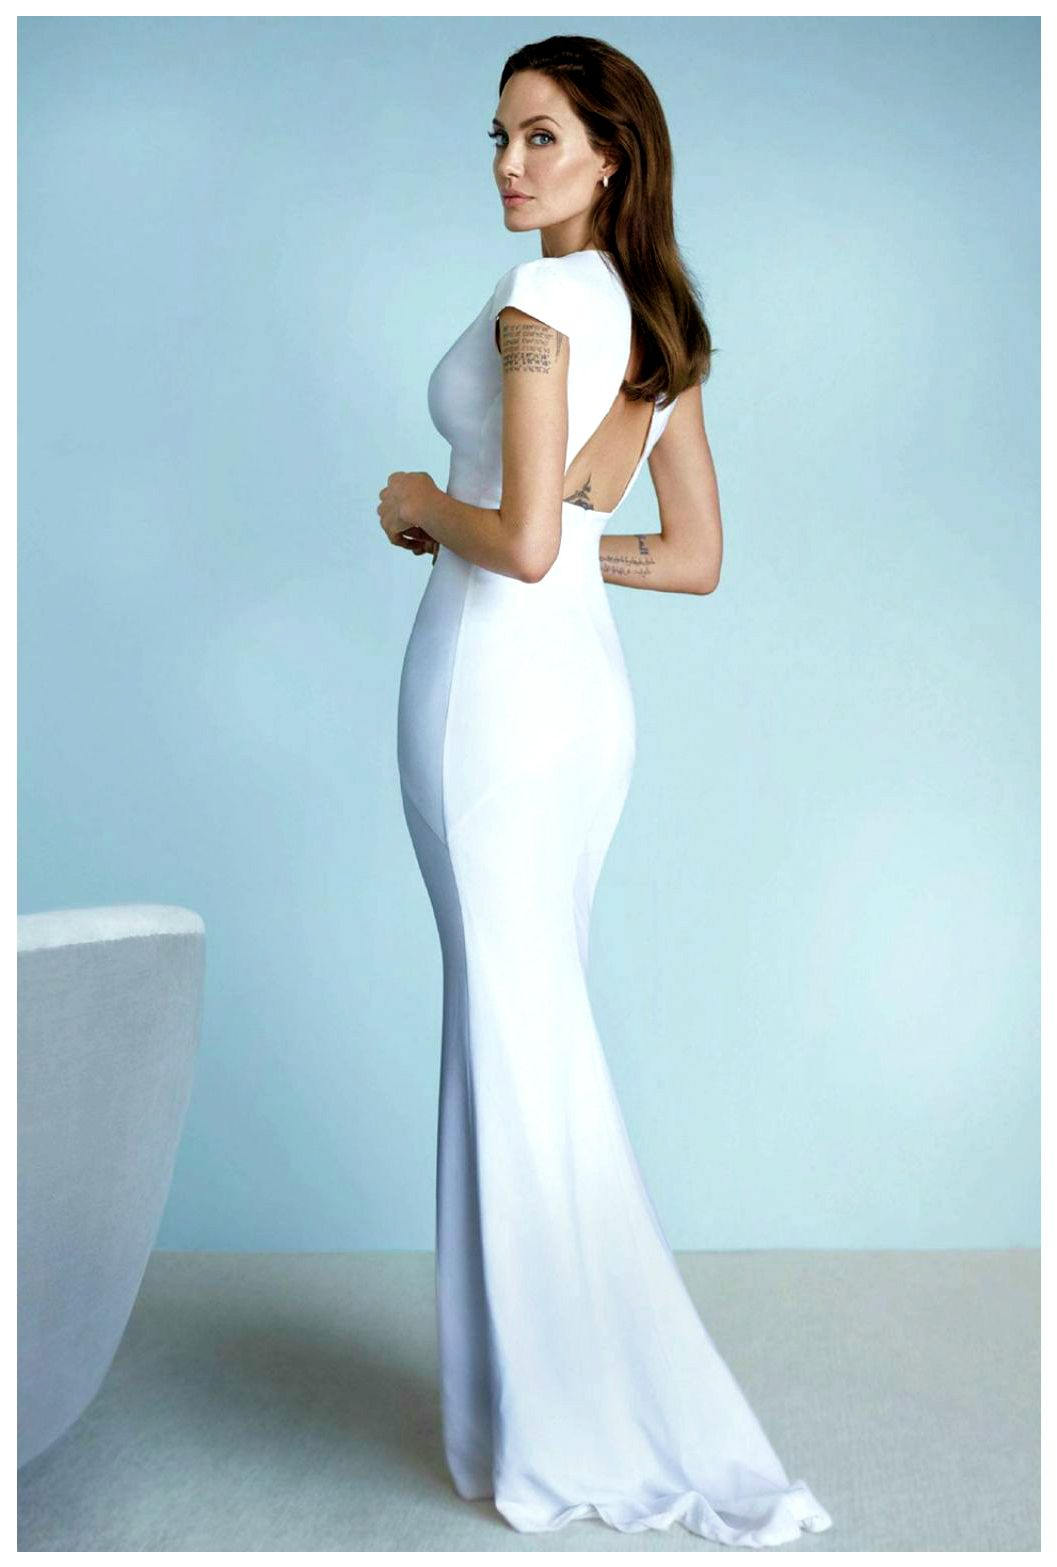 Roter Teppich Hollywood Kleider Robertocustodioart Angelina Jolie By Mario Testino 2014